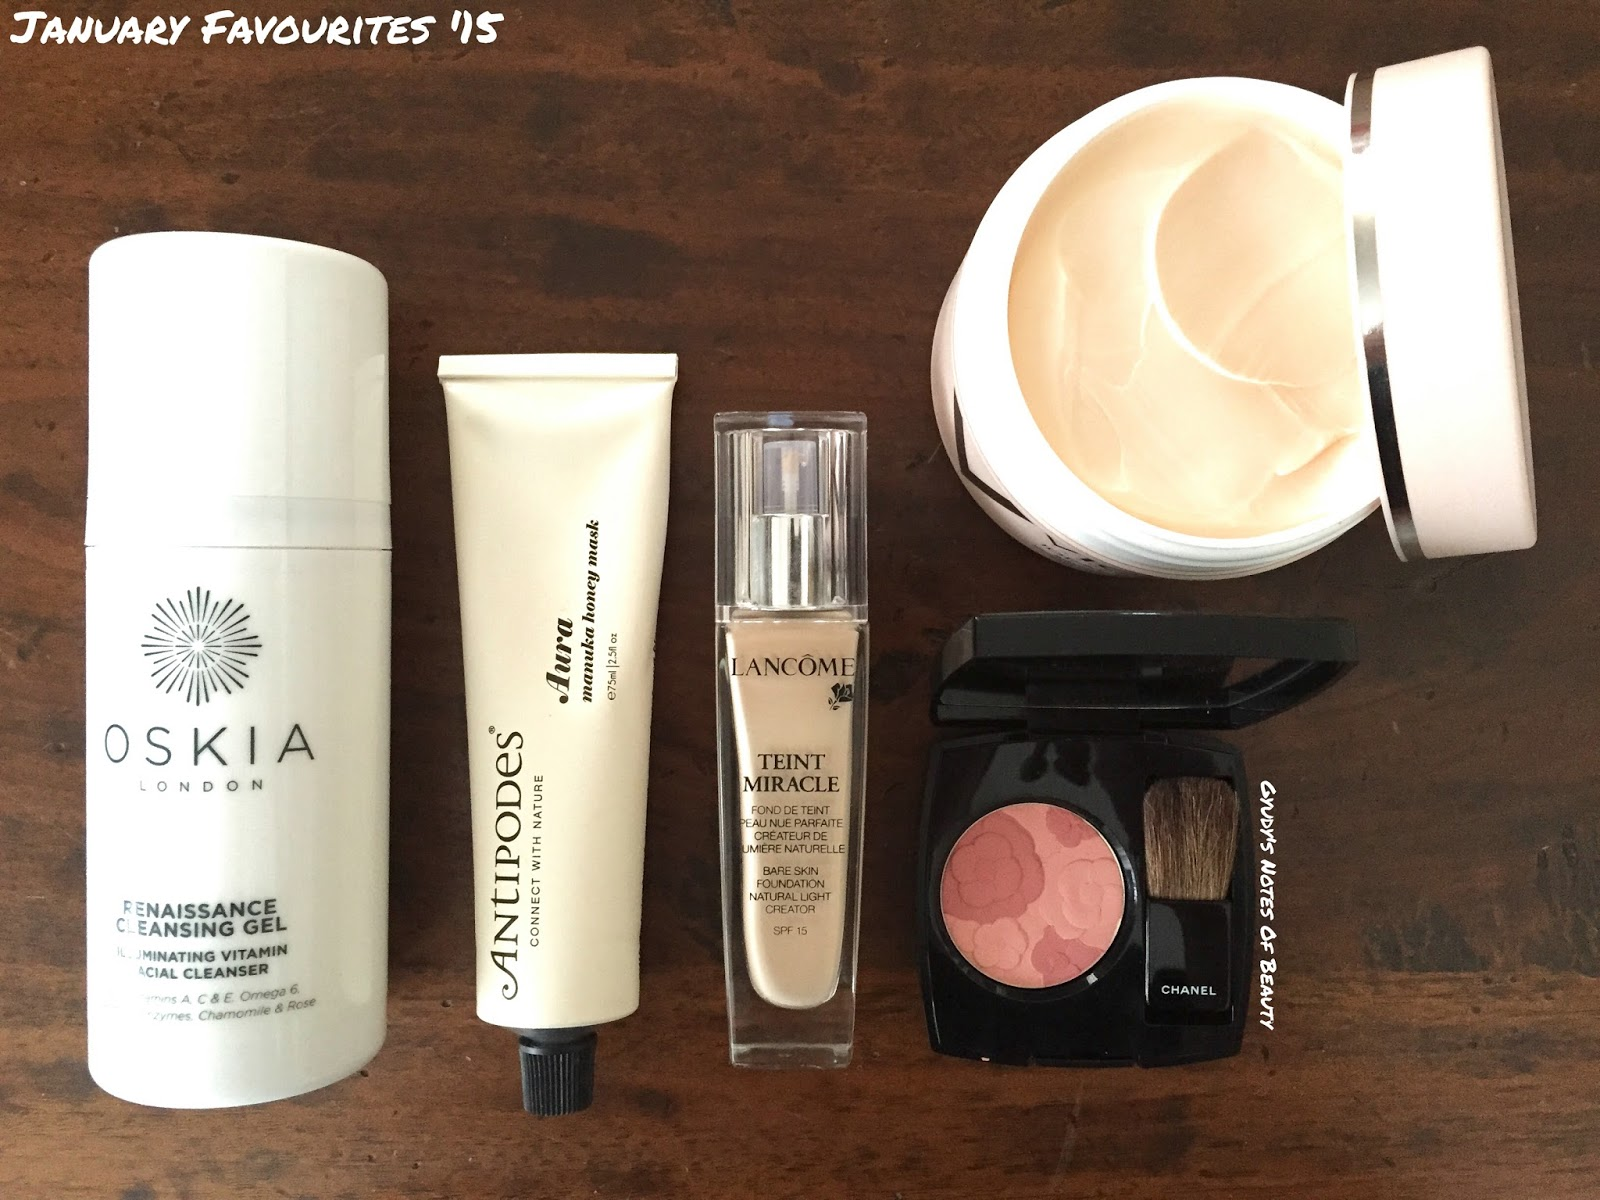 Chanel Jardin Camelia Blush Aura Manuka Mas Antipodes Lancome Teint Miracle Foundation Vichy Ideal Body Oskia Renaissance Cleansing Gel